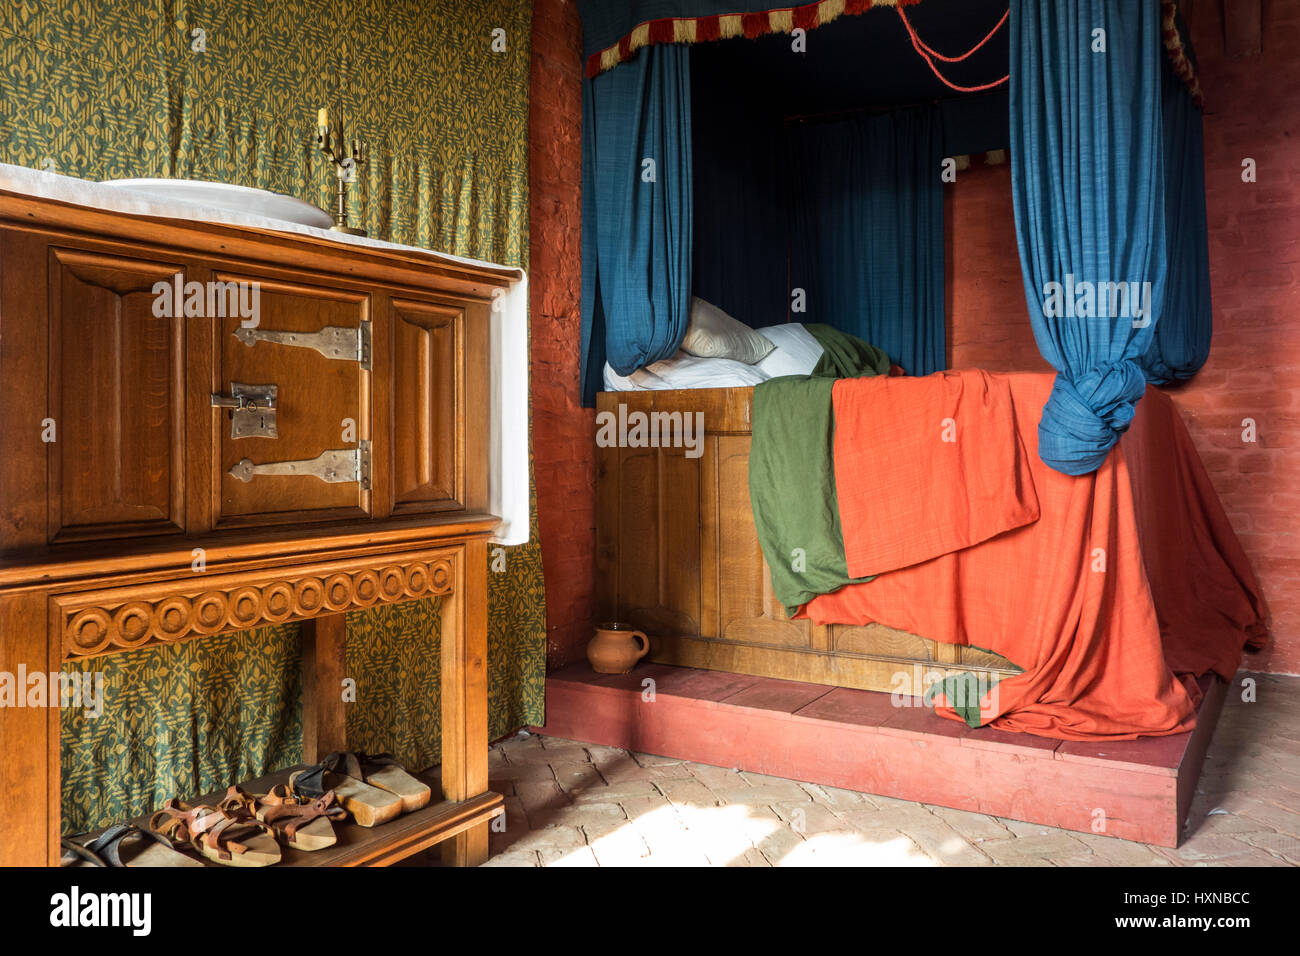 Colourful medieval curtained bedstead / bed with curtains in bedroom from the Middle Ages - Stock Image